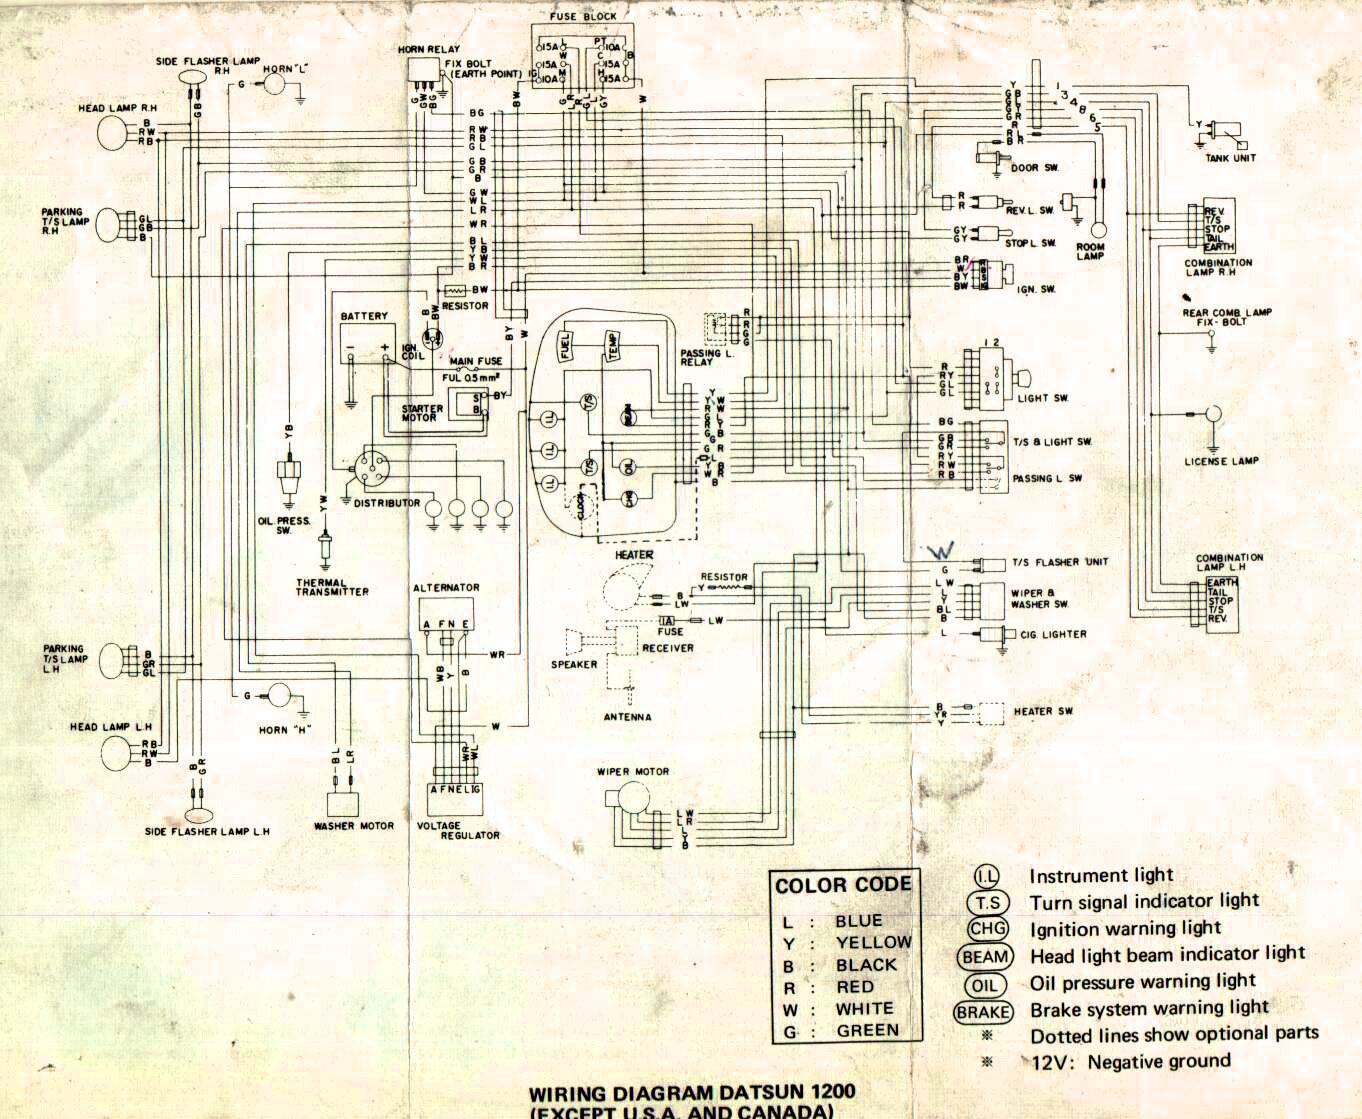 280z Wiring Harness Rebuild How To Trusted Diagram 1983 280zx Diagrams 1973 Nissan 240z U2022 Engine